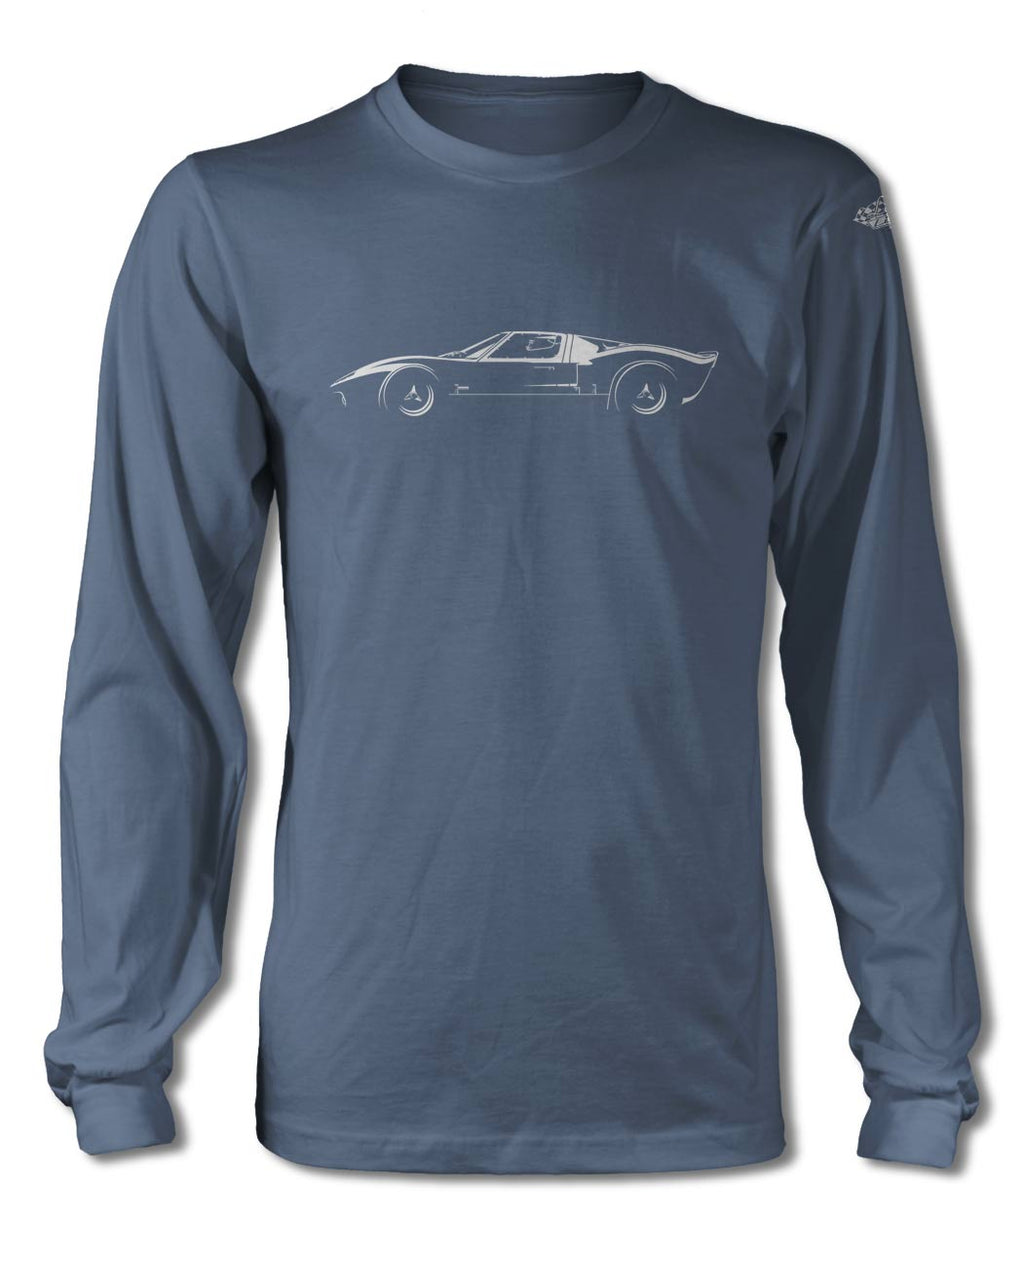 1965 Ford GT40 T-Shirt - Long Sleeves - Side View